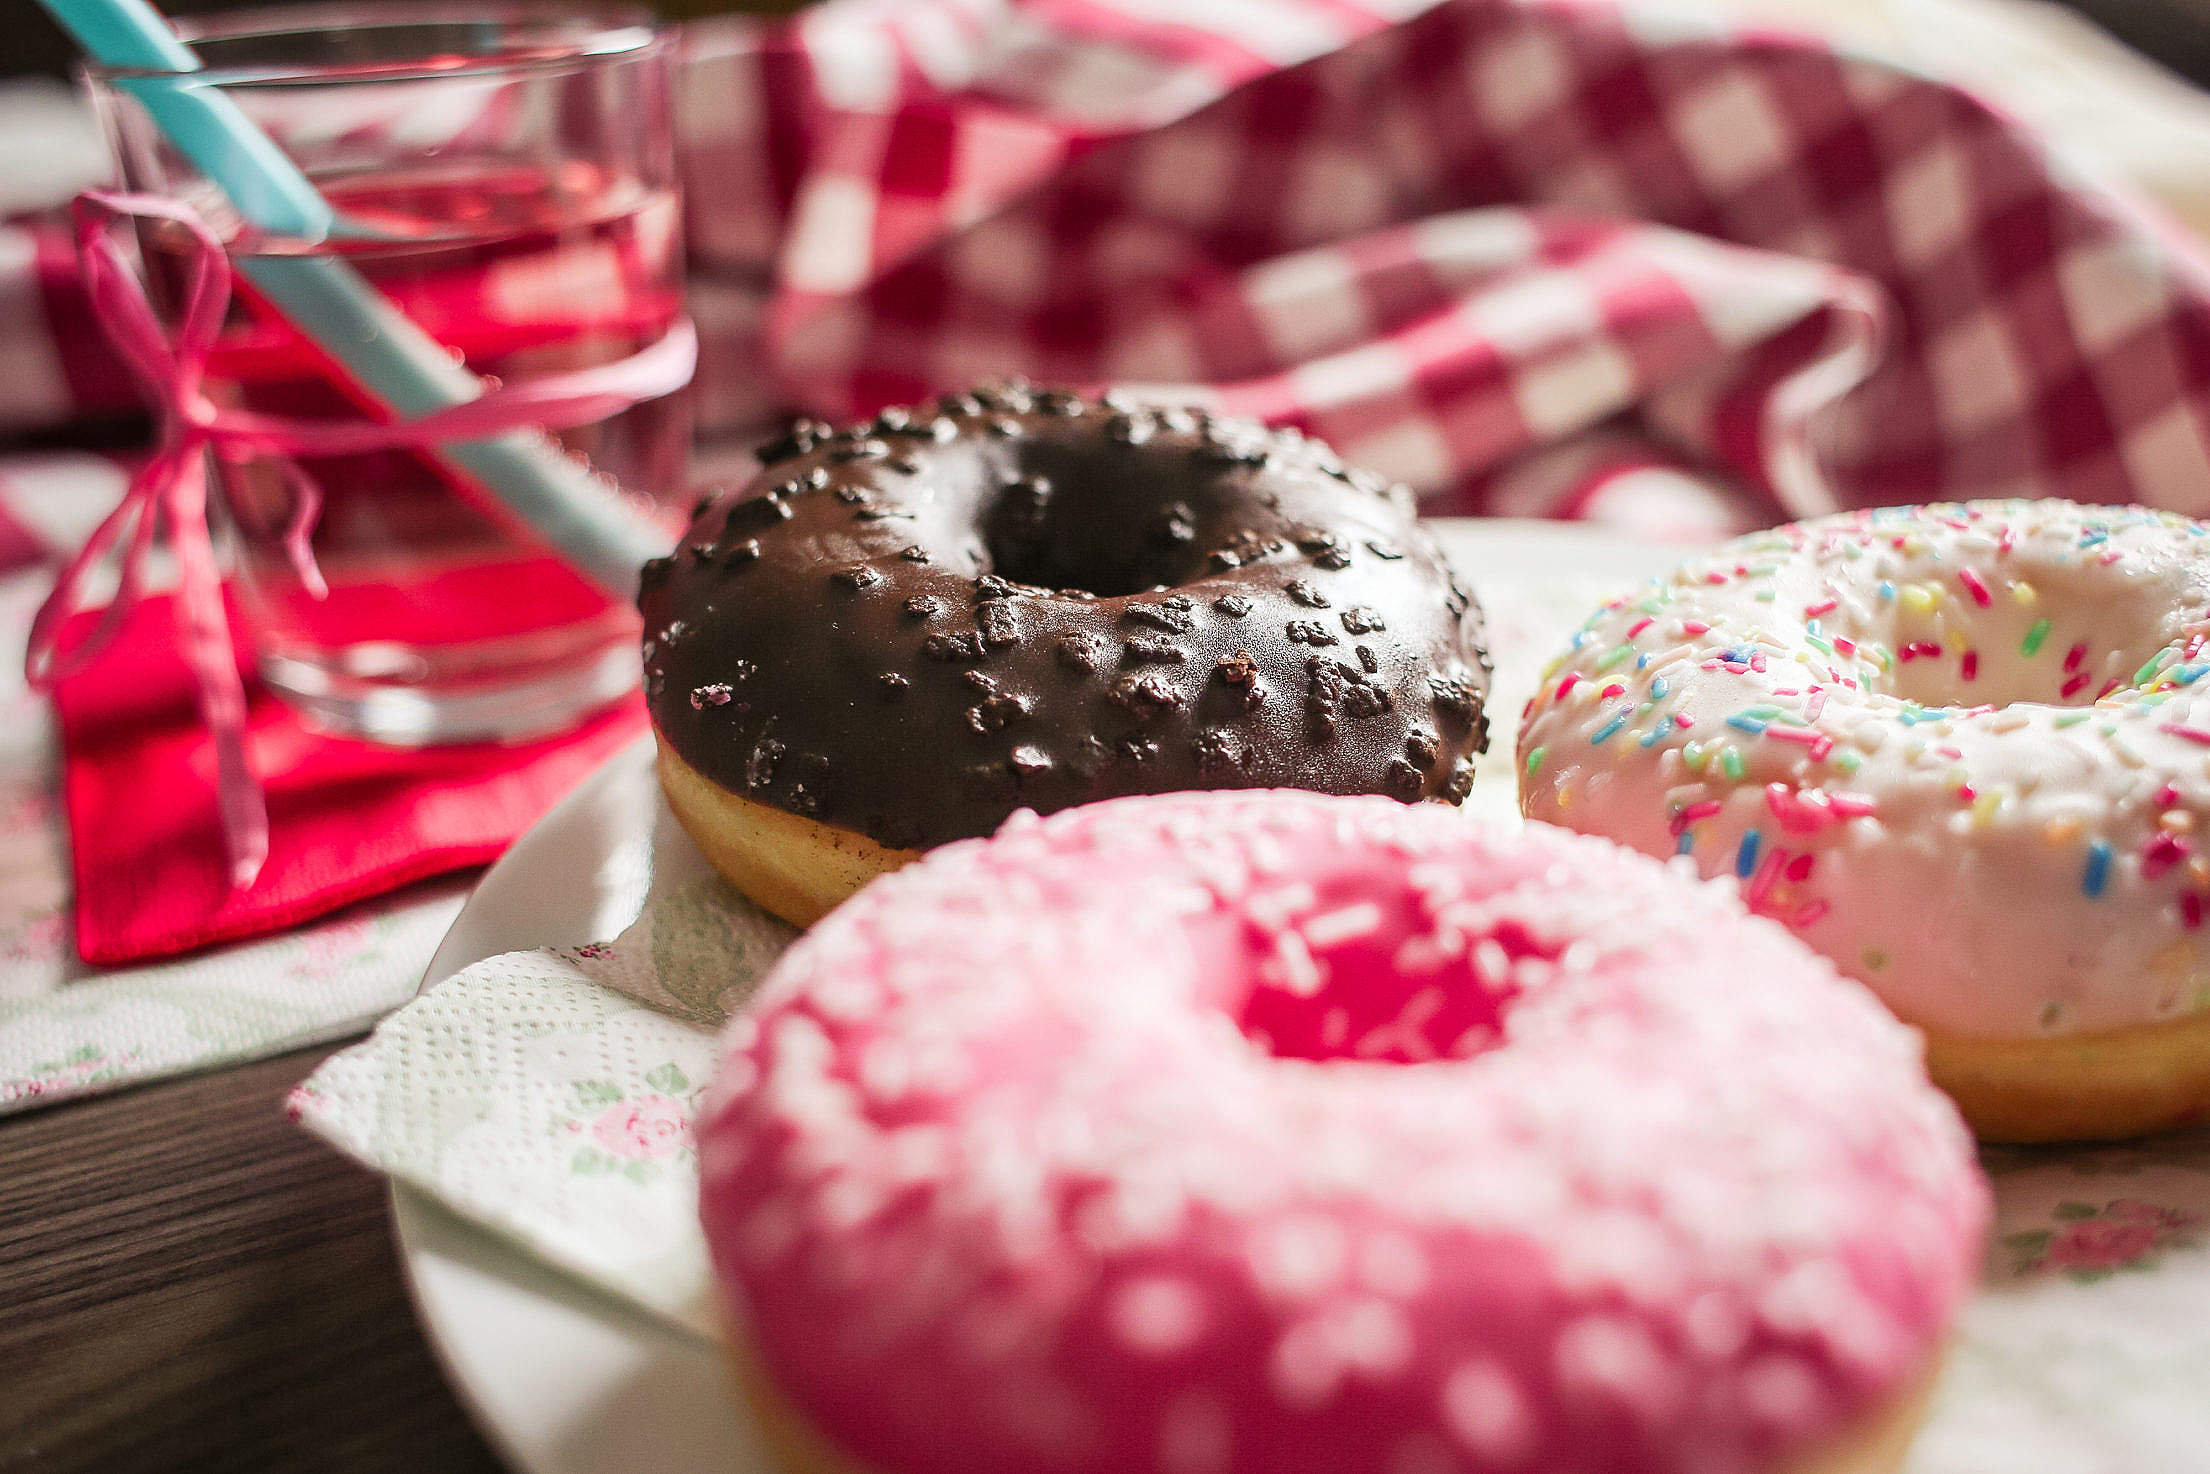 Three Yummy Sweet Colorful Donuts Free Stock Photo